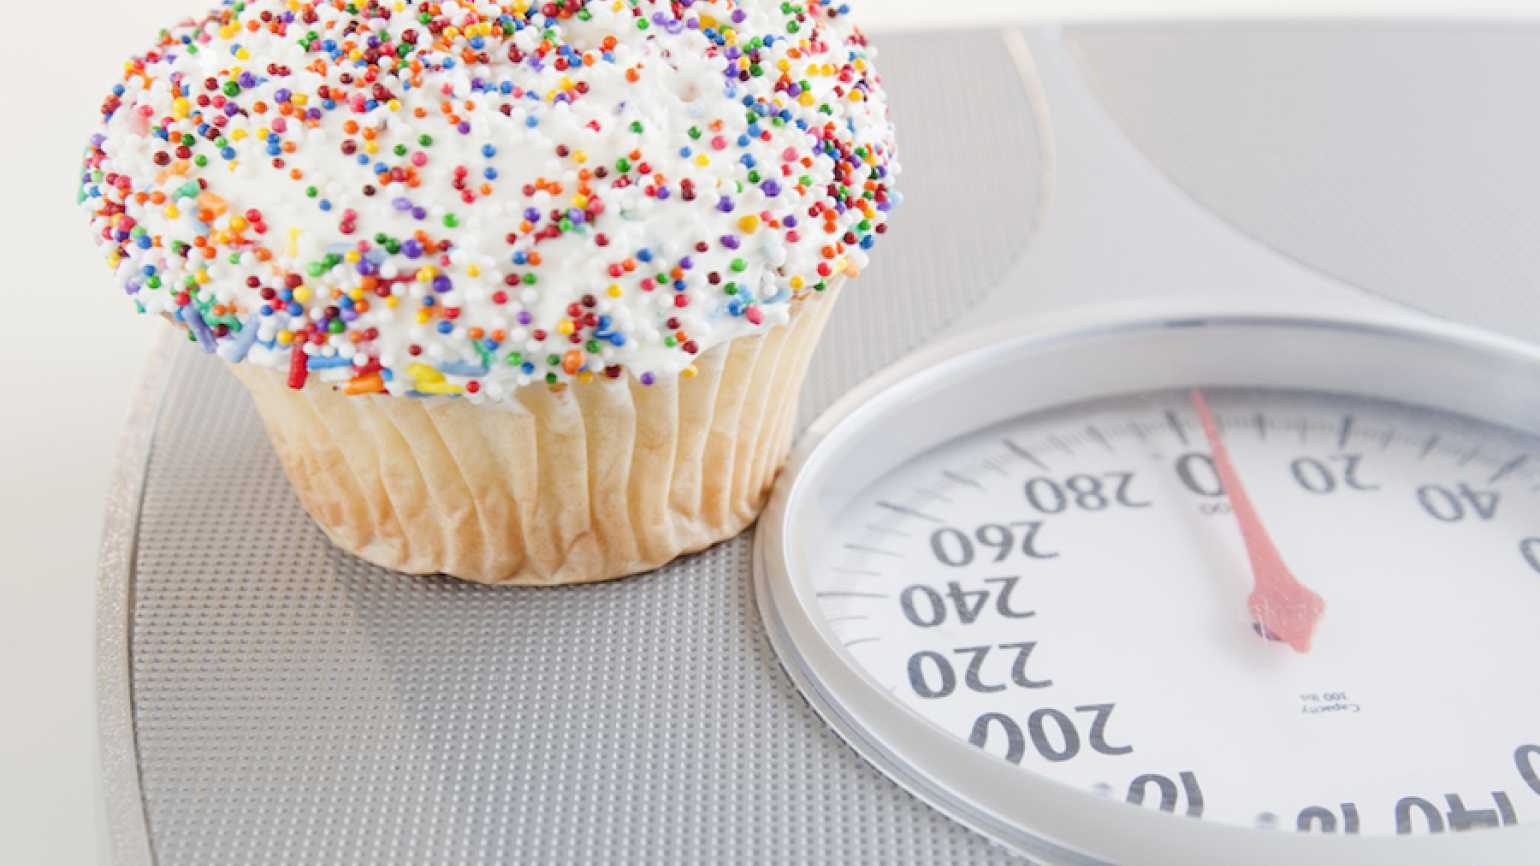 Cupcake on a scale. Photo: Thinkstock.